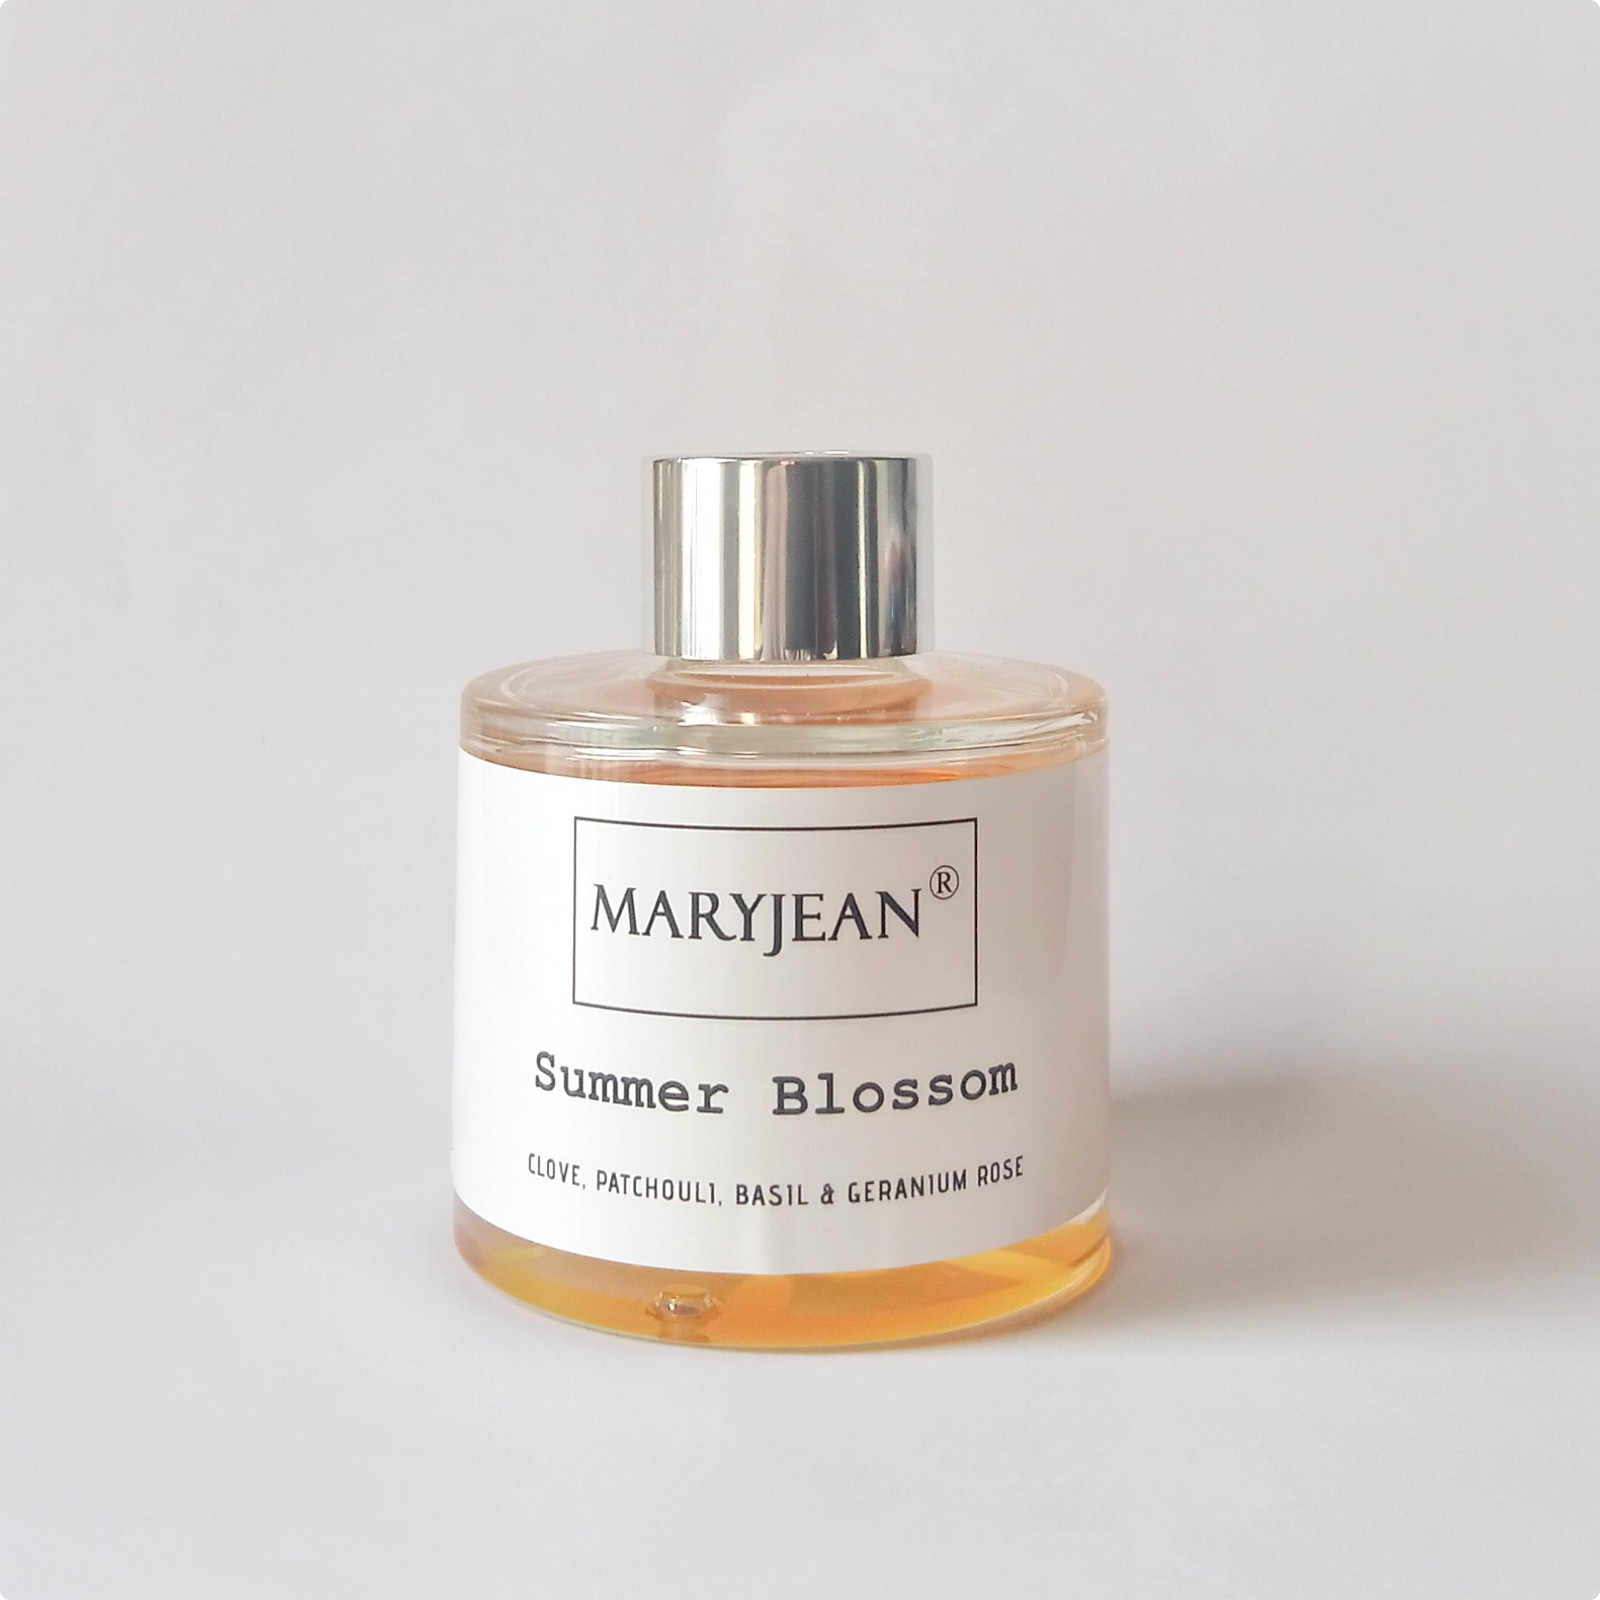 Unique blends of essential oils from Mary Jean our Home Seasons home fragrance range is our latest addition for your home